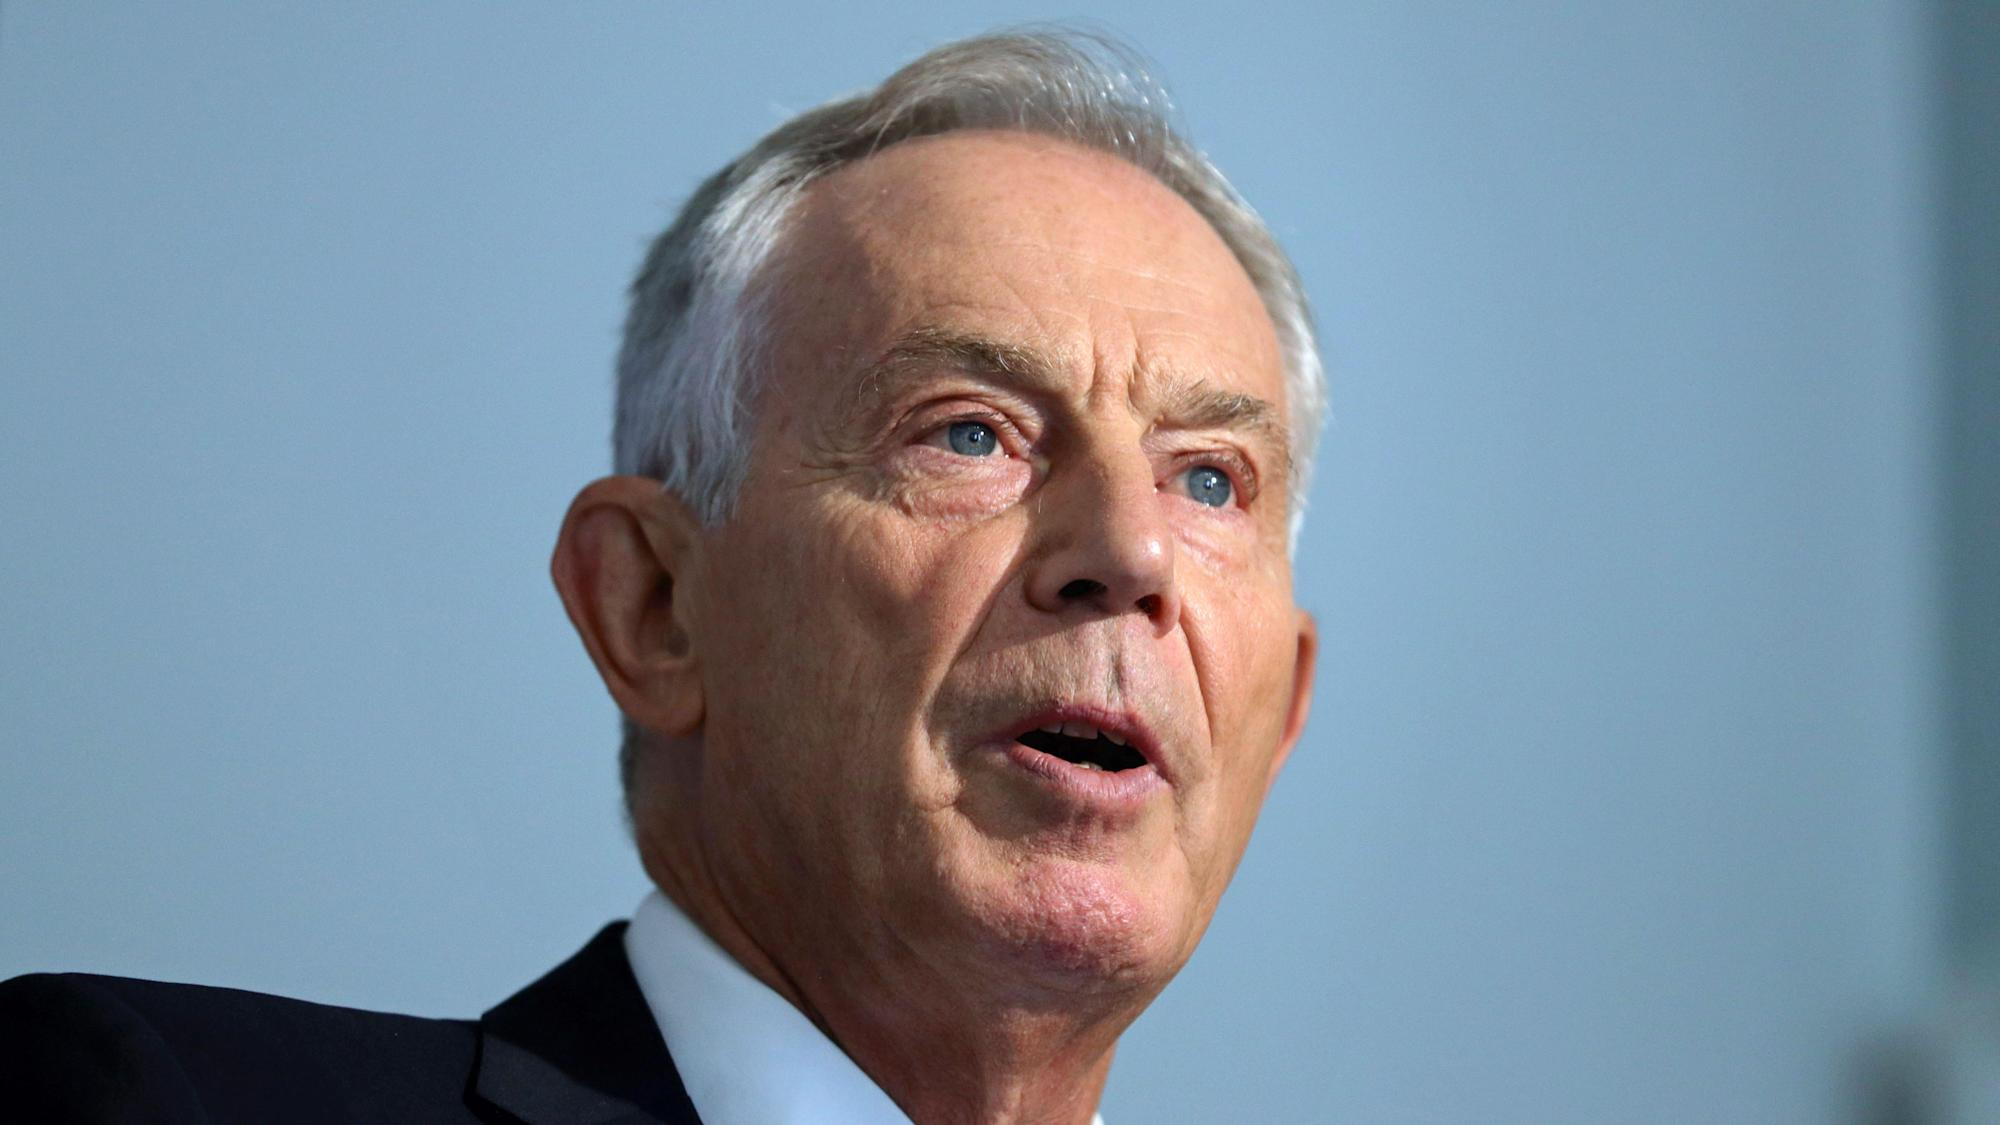 Tony Blair to speak at this year's Hay Festival